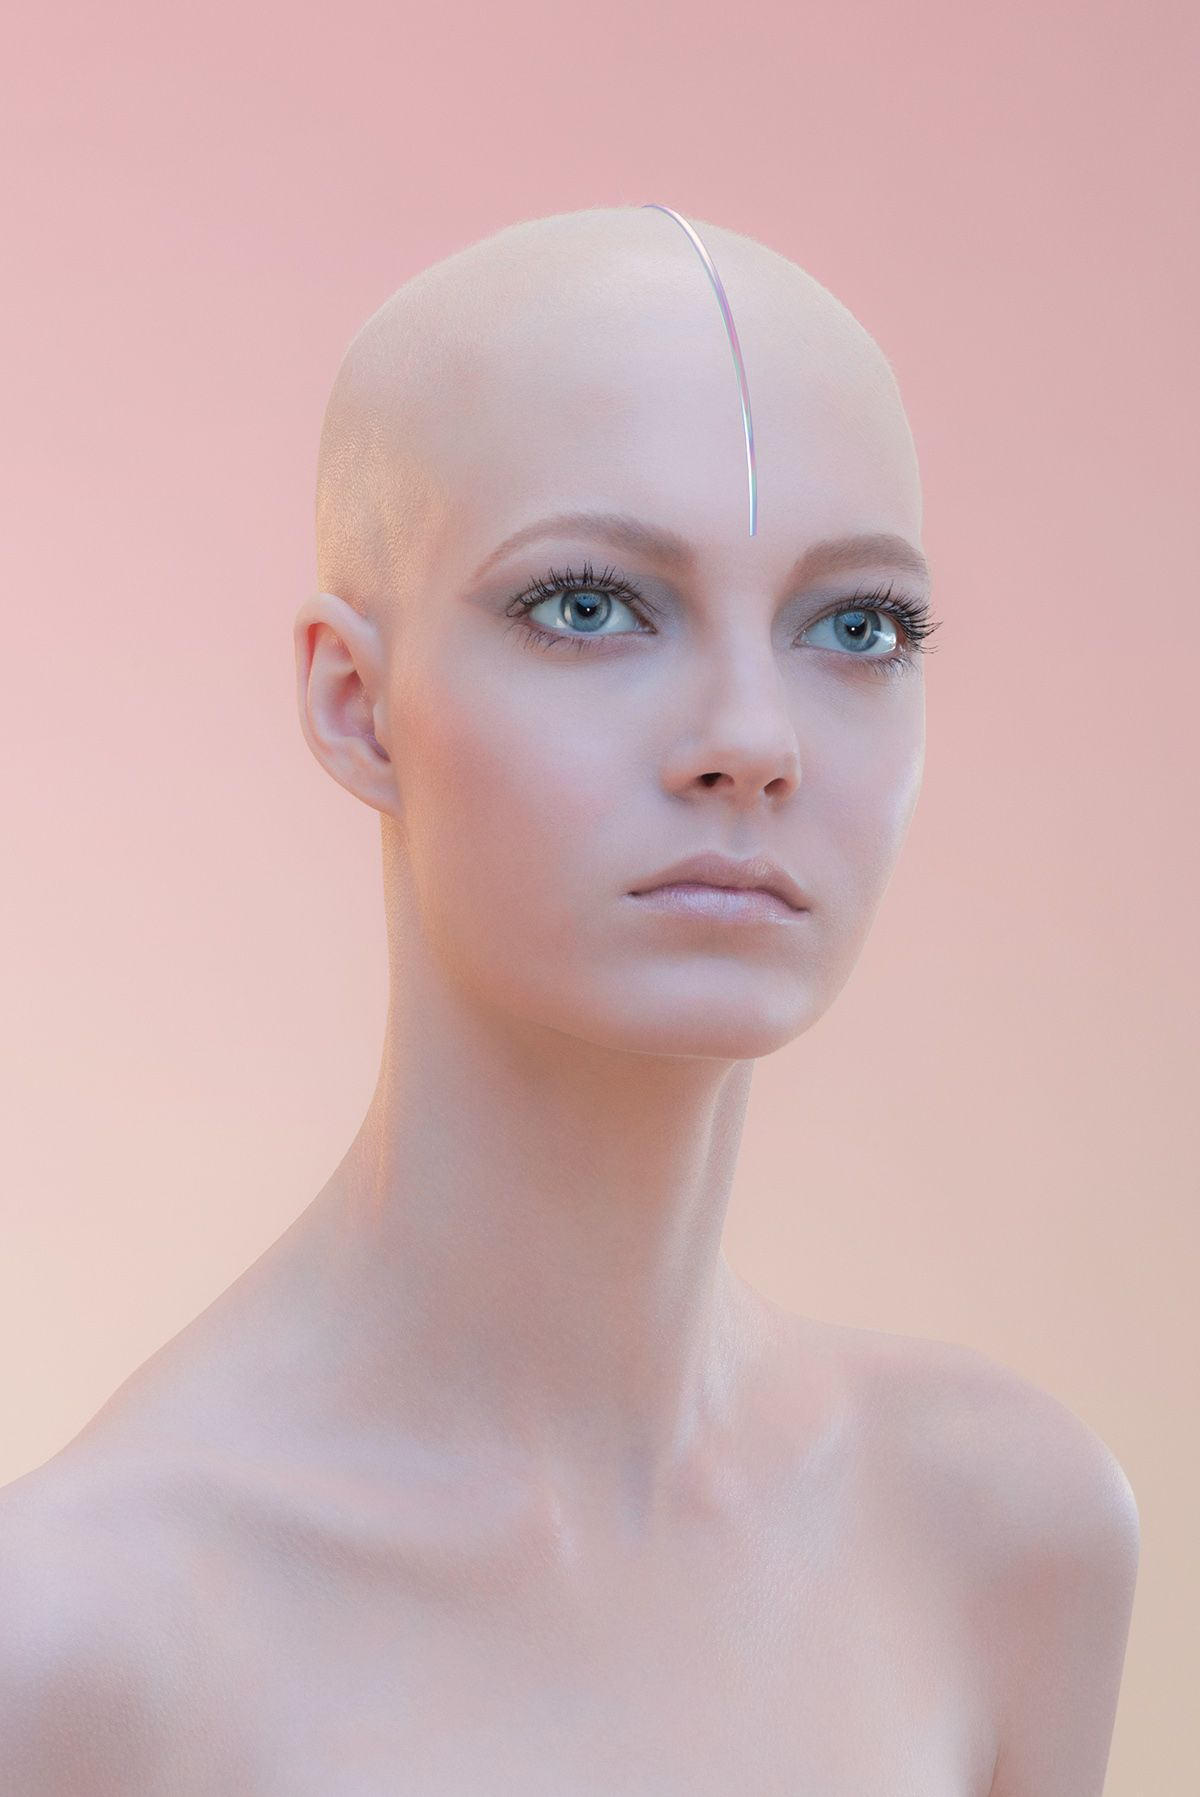 Jesus Moreno on Behance | hairstyles | Pinterest | Nude makeup and ...